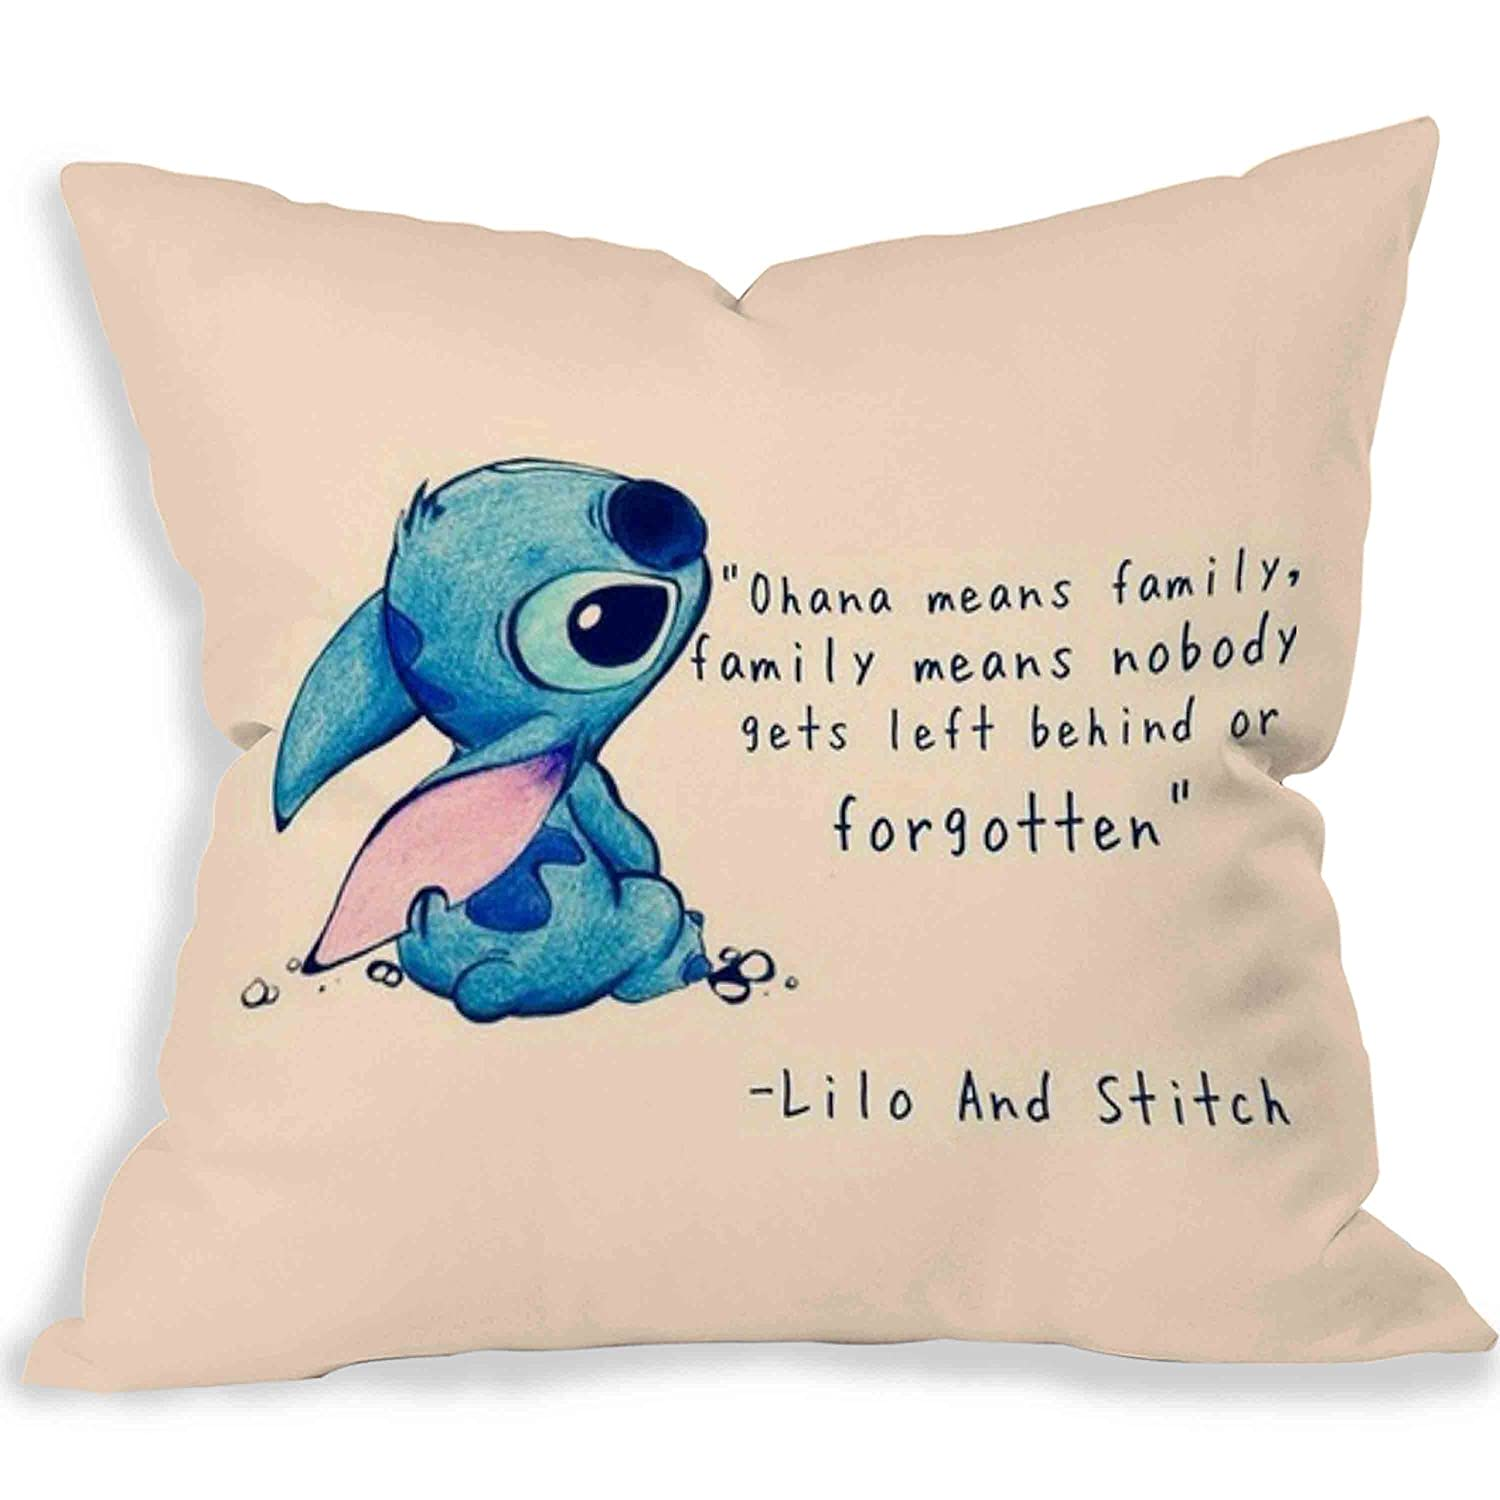 Disney Lilo And Stitch Quote Pillow Case 16x16 Two Sides By